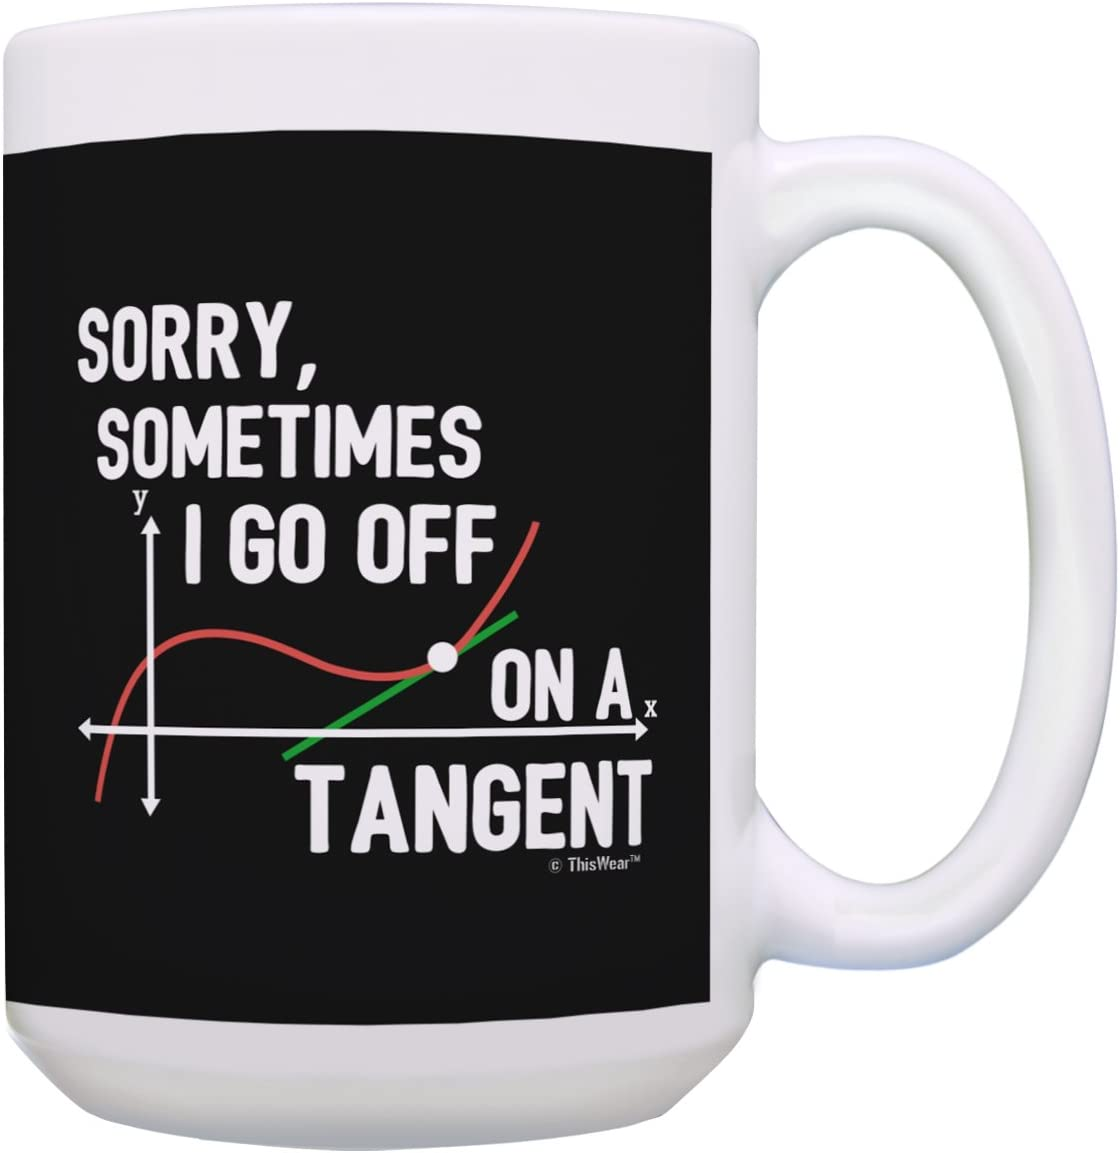 Funny Math Teacher Gifts Wholesale Sometimes I Tangent Pu Off on All stores are sold Go a